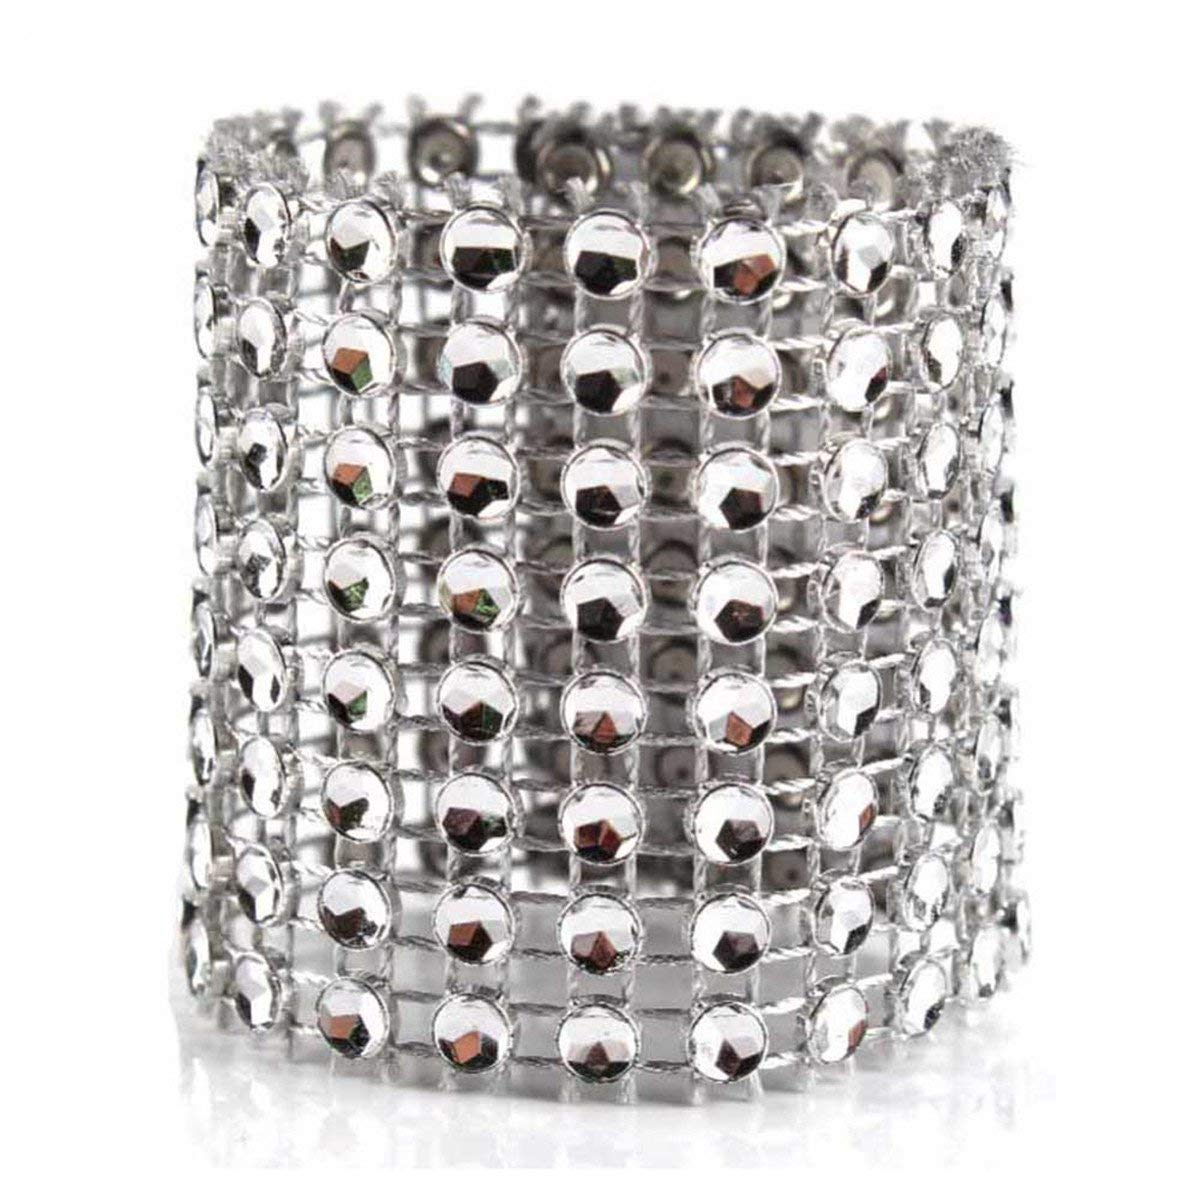 Queenbox Napkin Rings Rhinestone Napkin Rings Rhinestone Chair Adornment For Wedding Party Banquet Reception Catering(10PCS, Silver)